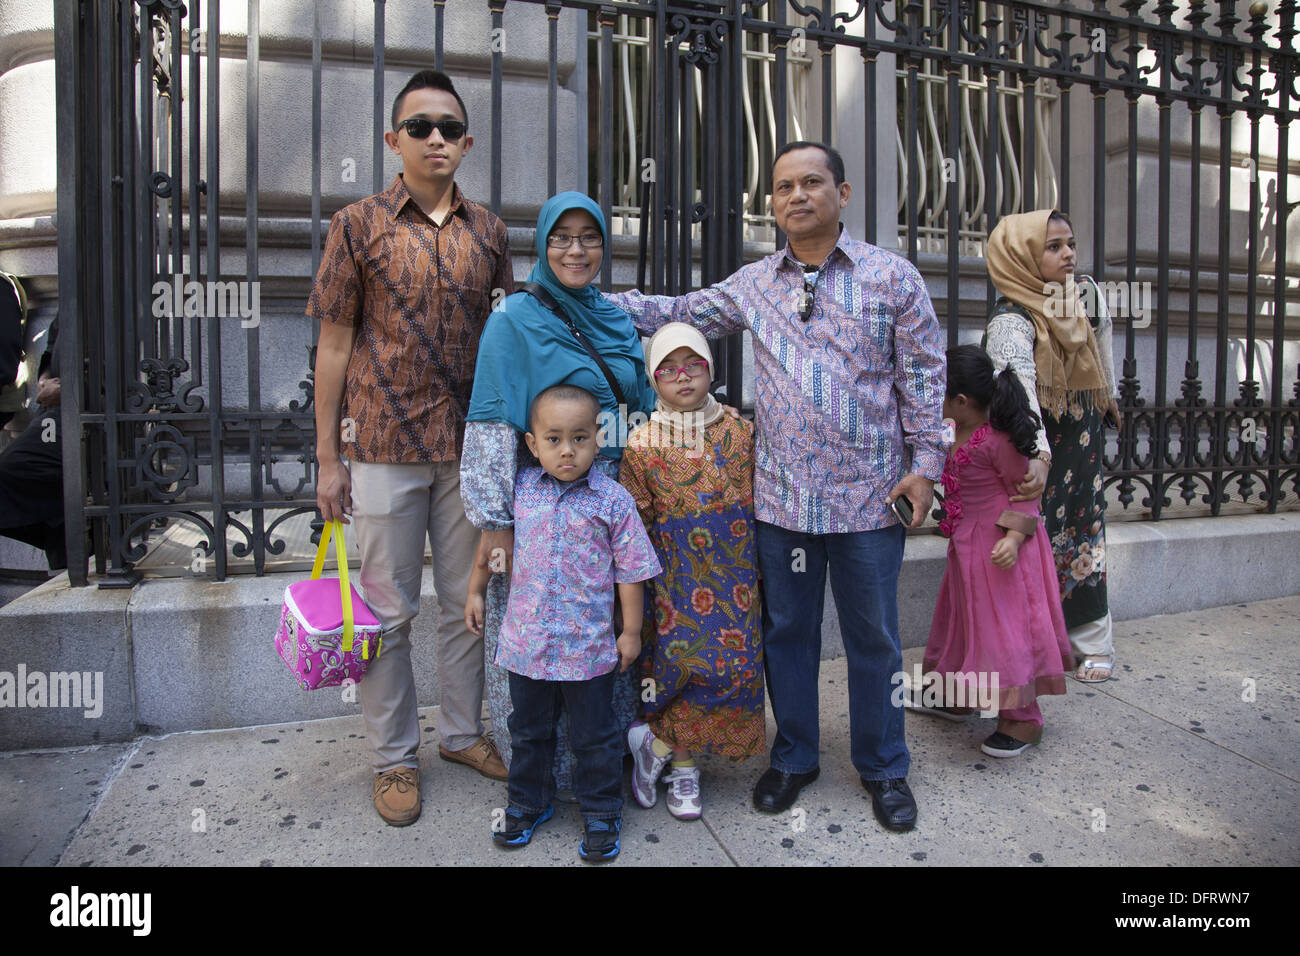 Annual Muslim Day Parade on Madison Avenue, New York City. Indonesian American Family - Stock Image